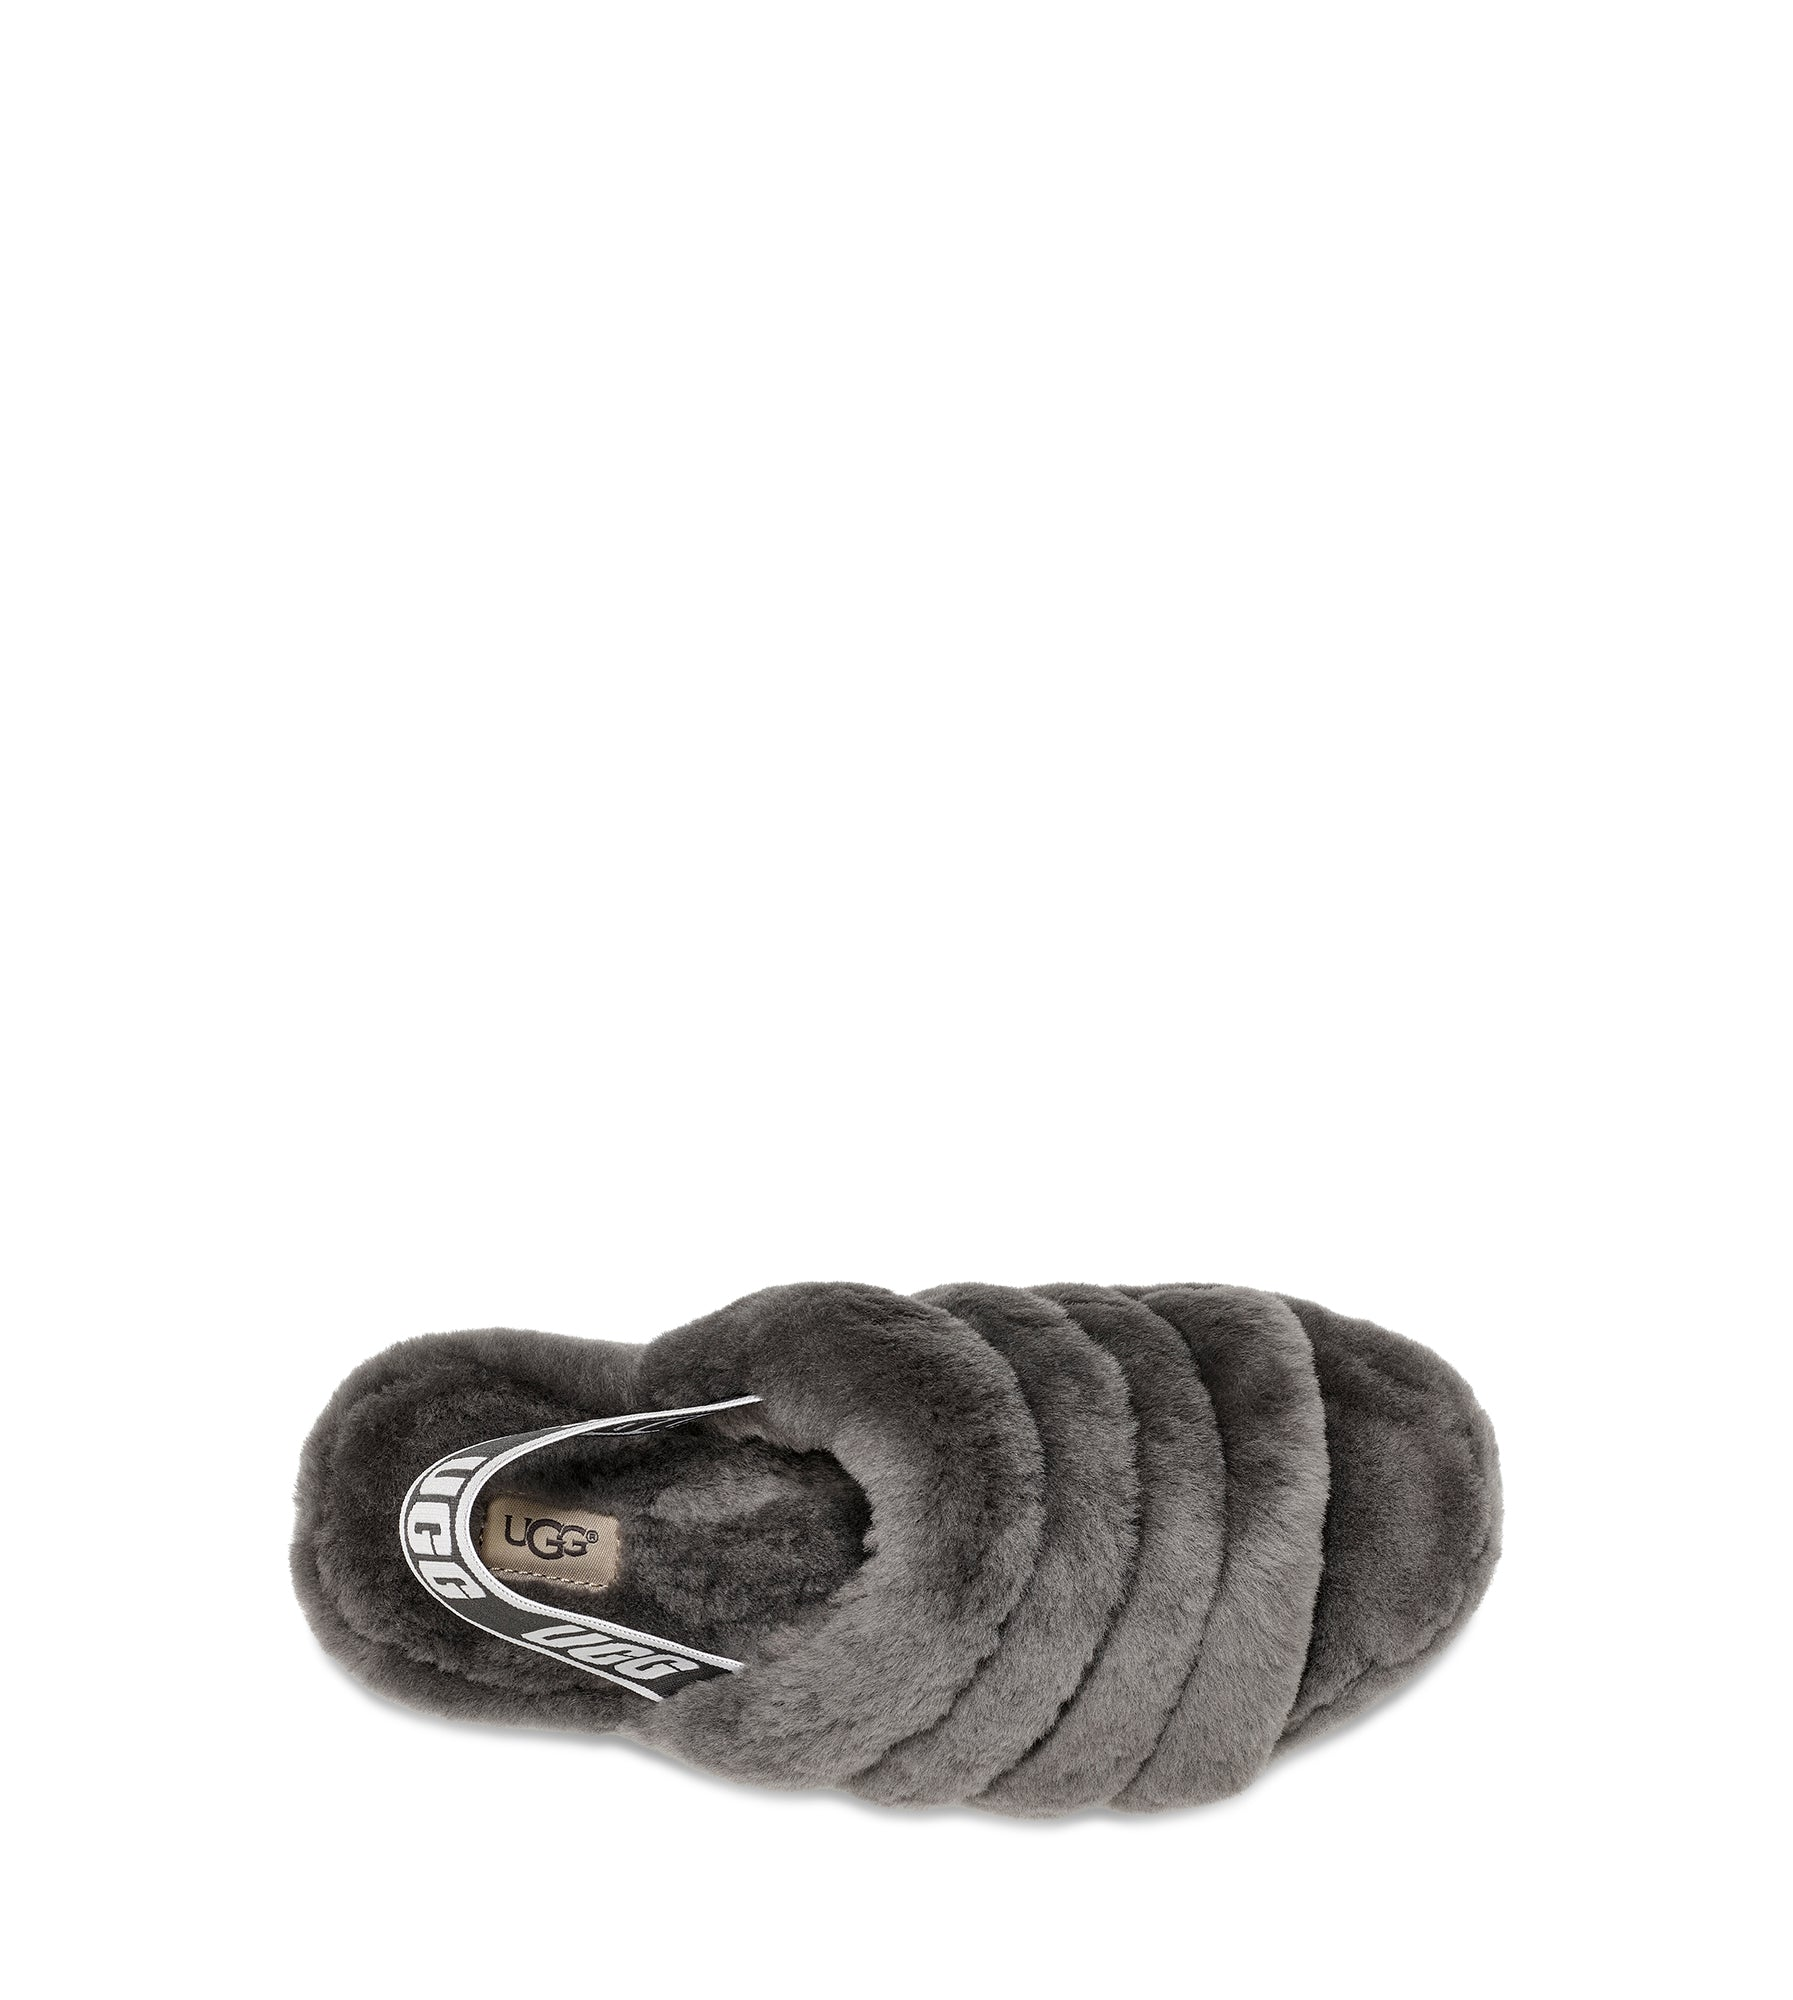 b99a3004bbfc UGG Women s Fluff Yeah Slide in Charcoal – Welcome to Footprint27.com